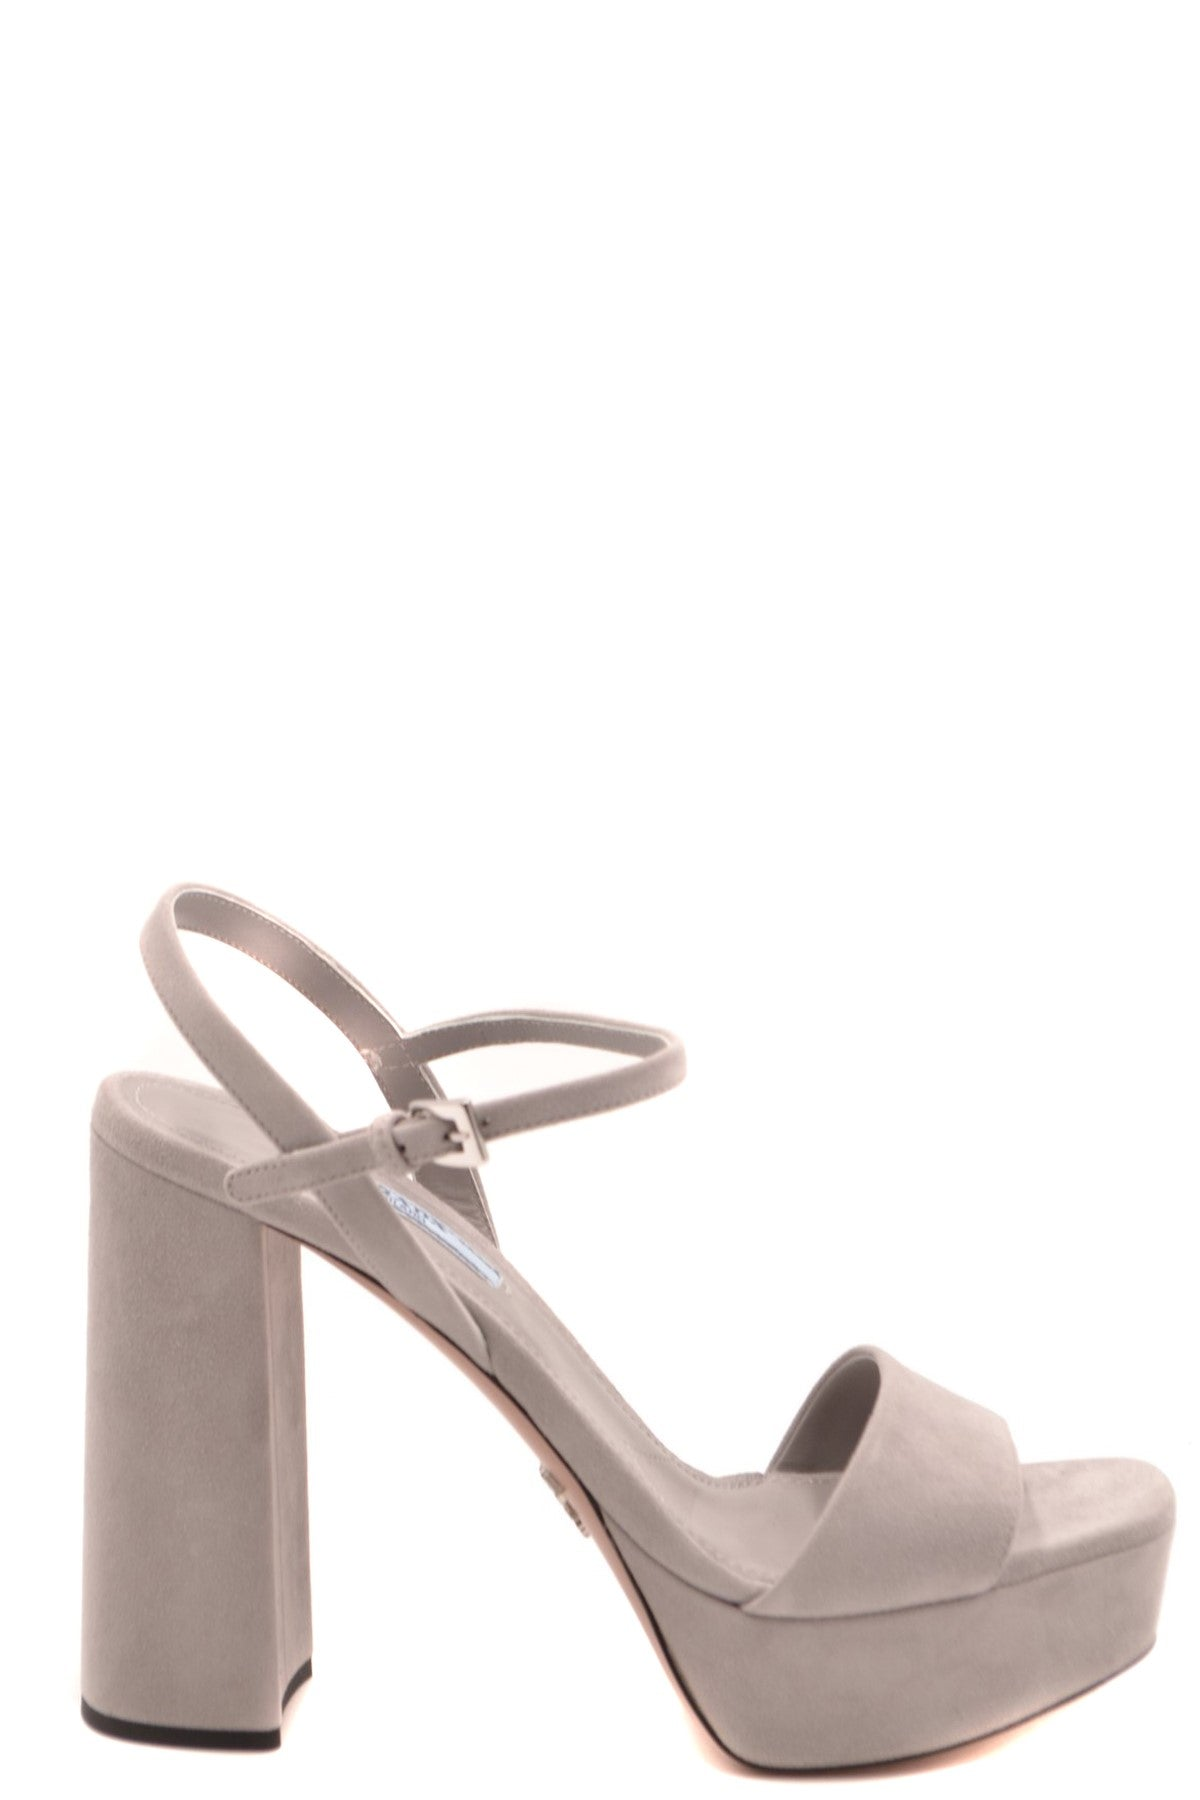 Shoes Prada-Women's Fashion - Women's Shoes - Women's Sandals-36.5-Product Details Terms: New With LabelMain Color: GrayType Of Accessory: ShoesSeason: Spring / SummerMade In: ItalyGender: WomanHeel'S Height: 12Size: EuComposition: Chamois 100%Year: 2020Manufacturer Part Number: 1Xp75A 008 F0424-Keyomi-Sook